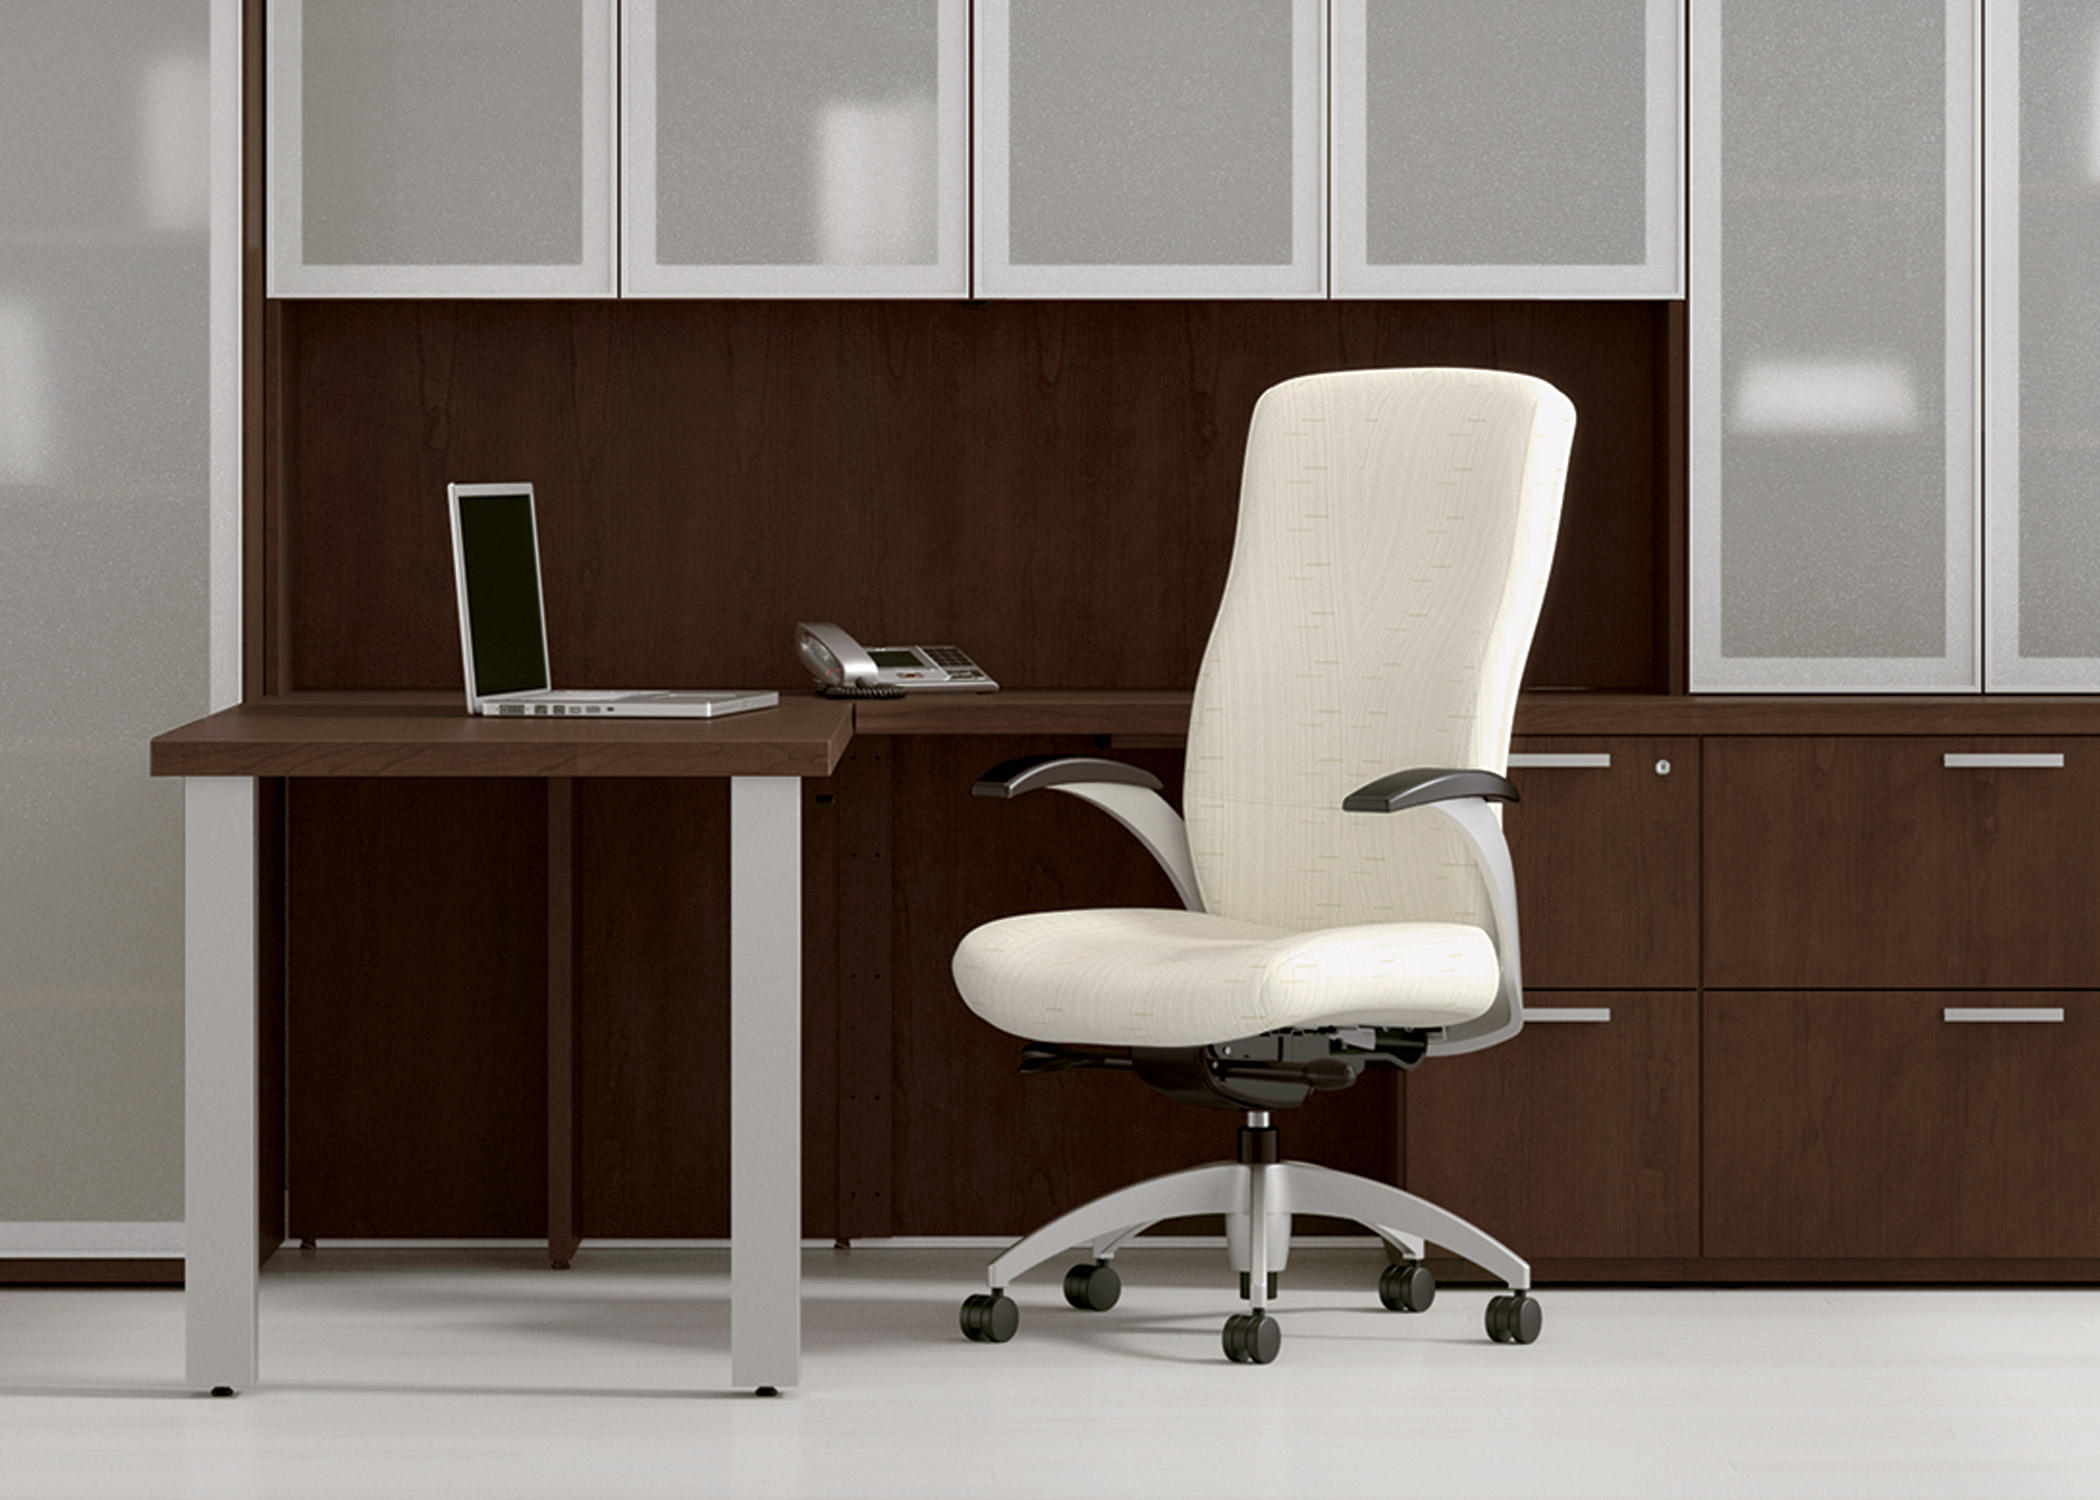 AURORA SEATING Management chairs from National Office Furniture